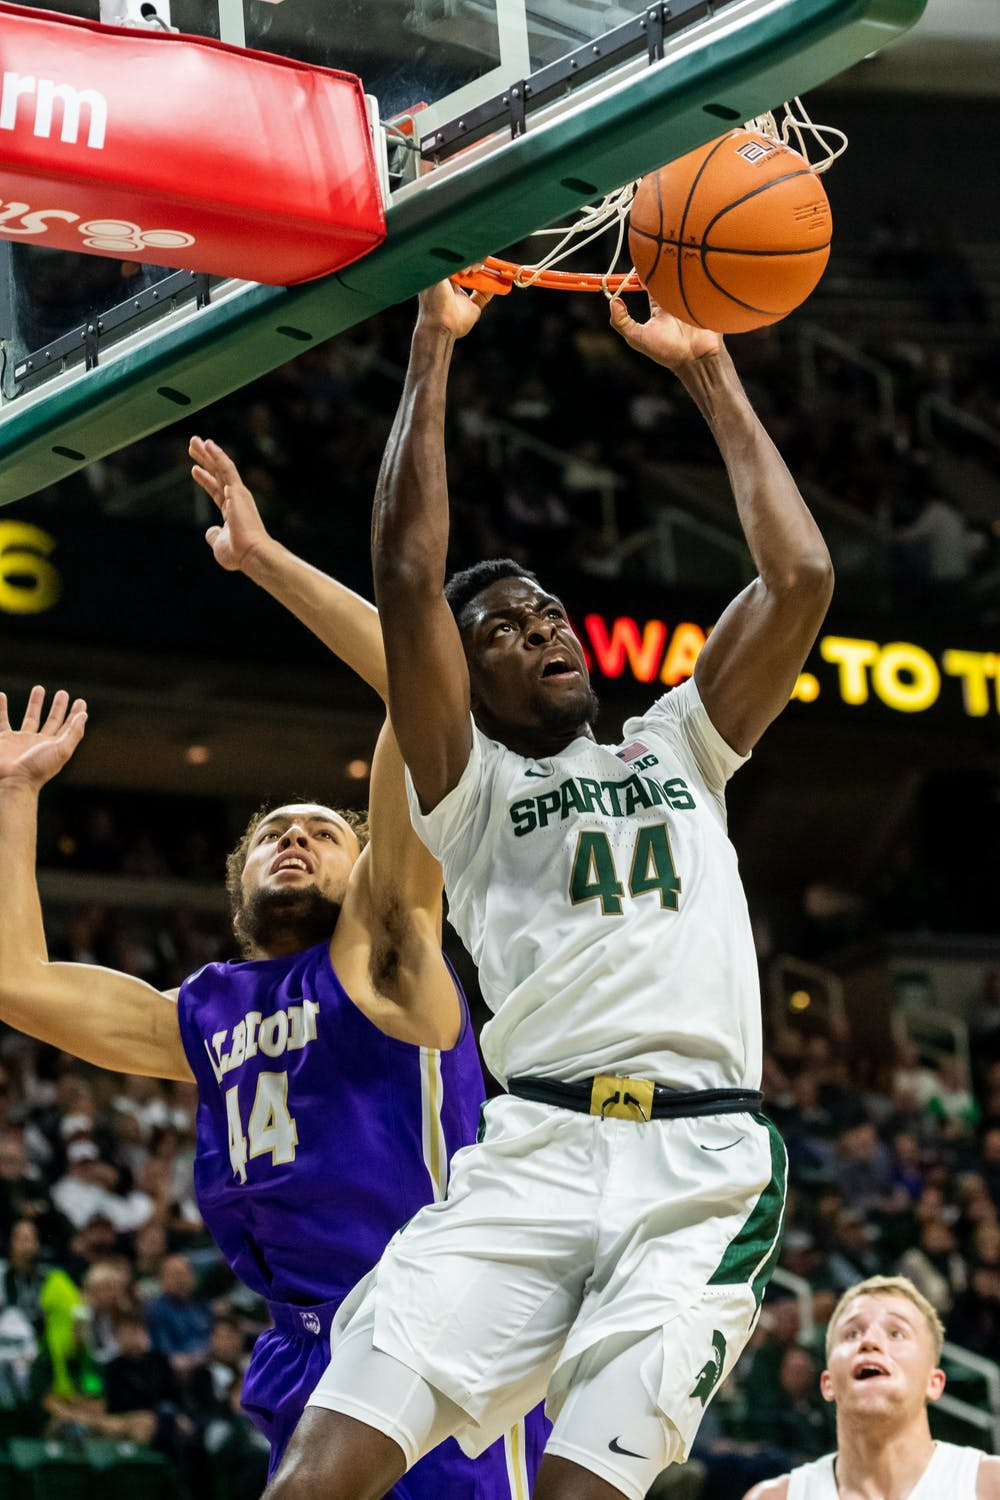 <p>Sophomore forward Gabe Brown dunks the ball against Albion College. The Spartans led the Britons, 40-25, at half at the Breslin Student Events Center on Oct. 29, 2019. </p>